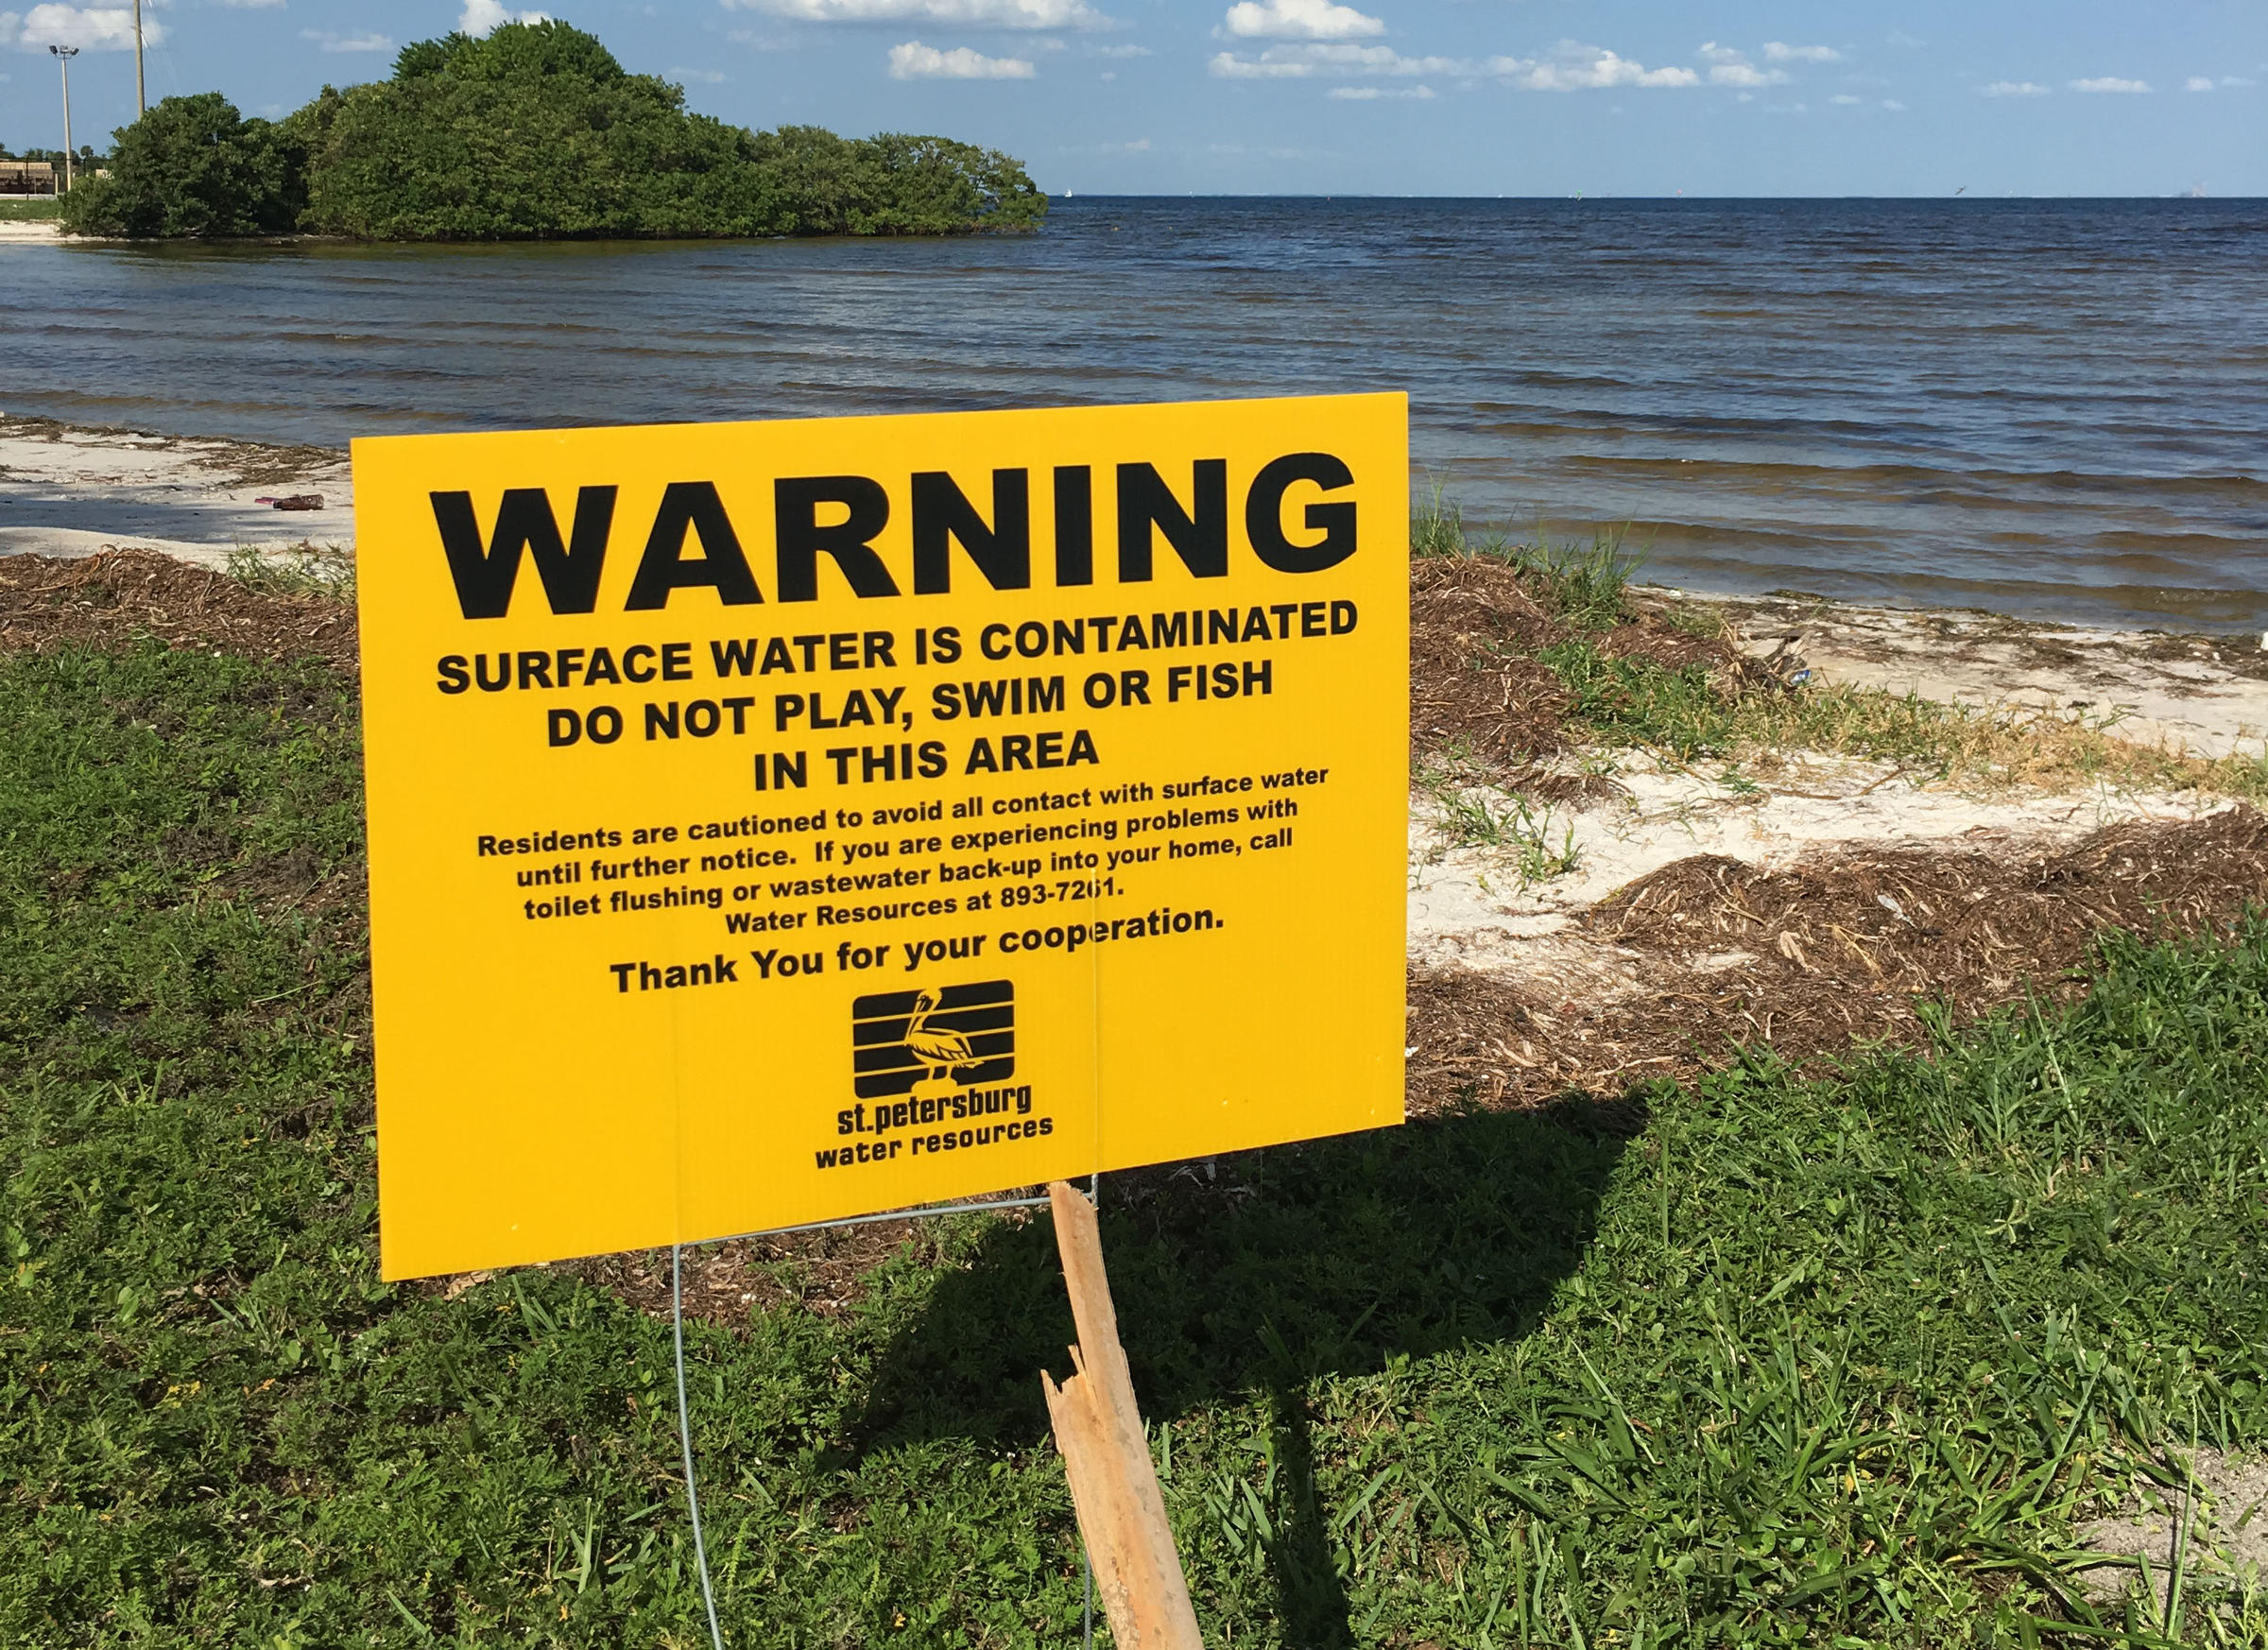 """October 2018:   St. Pete Settles Clean Water Act Lawsuit Over Sewage Releases   St. Petersburg leaders have settled a lawsuit filed by environmental groups in 2016 after the city released millions of gallons of sewage into Tampa Bay.  Under the settlement, the city committed to inspections and improvements to its sewage system. The measures go beyond what was required by a consent order that the Department of Environmental Protection issued in response to the release of up to 200 million gallons of sewage during storms in 2015 and 2016.  """"We felt that the consent order that the city entered into with DEP was not going to be adequate to fix the problem,"""" said Justin Bloom, executive director of Suncoast Waterkeeper. """"It lacked adequate investment, investigation and a plan to really fix the infrastructure.""""  Suncoast Waterkeeper sued the city under the Federal Clean Water Act. The Ecological Rights Foundation and Our Children's Earth joined the group in filing the lawsuit.  The settlement has federal oversight and if the city fails to follow the terms, the environmental groups could take it back to court.   Read more here."""